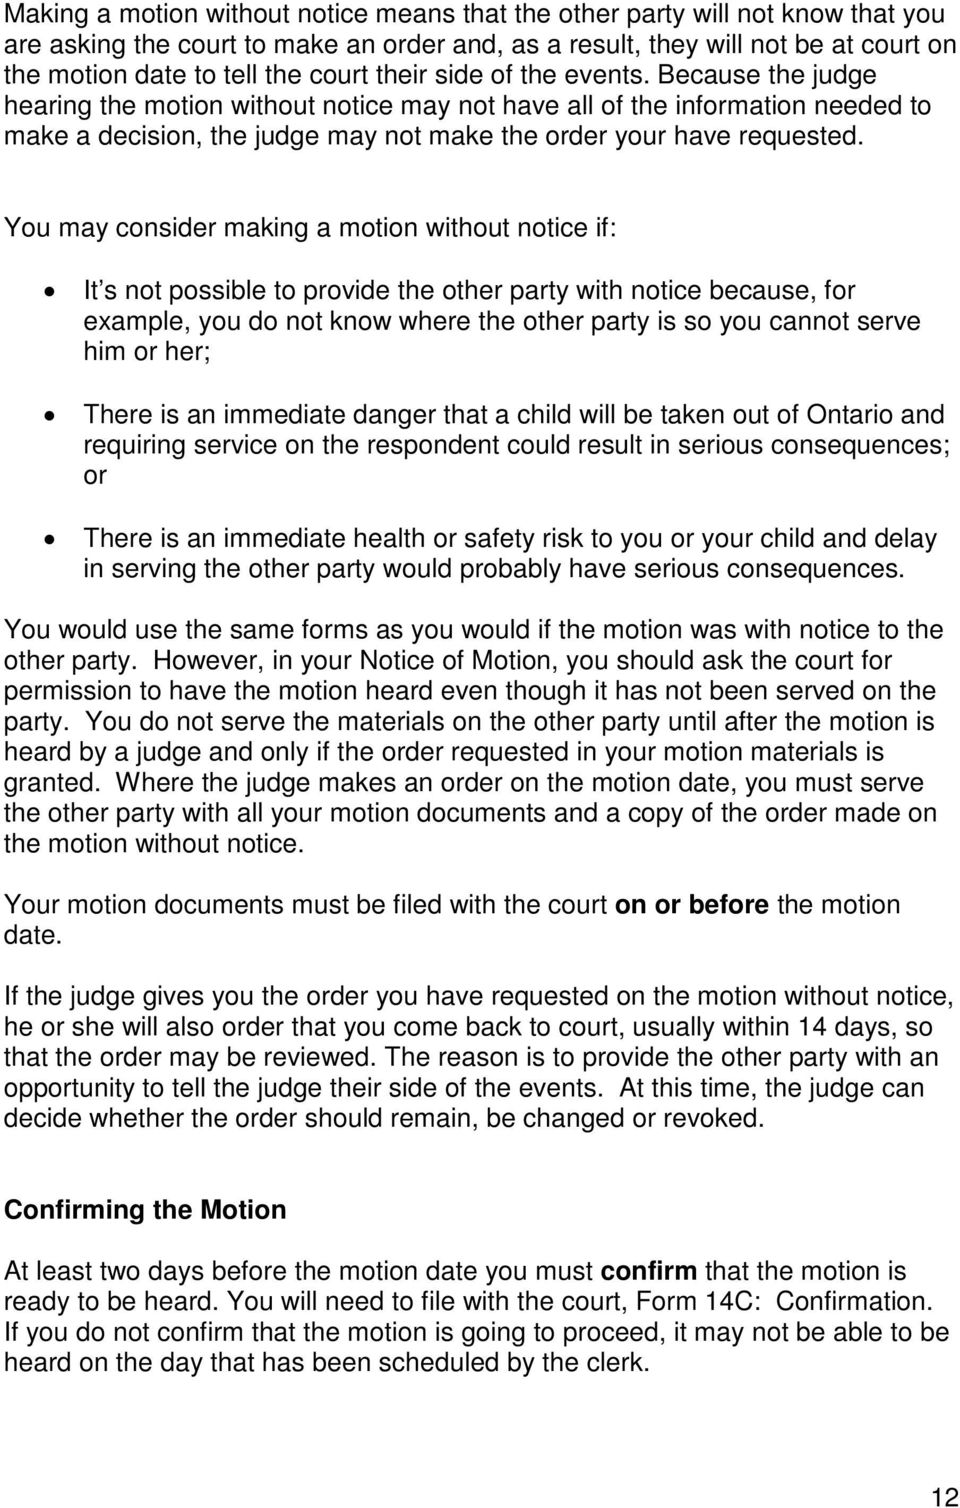 You may consider making a motion without notice if: It s not possible to provide the other party with notice because, for example, you do not know where the other party is so you cannot serve him or